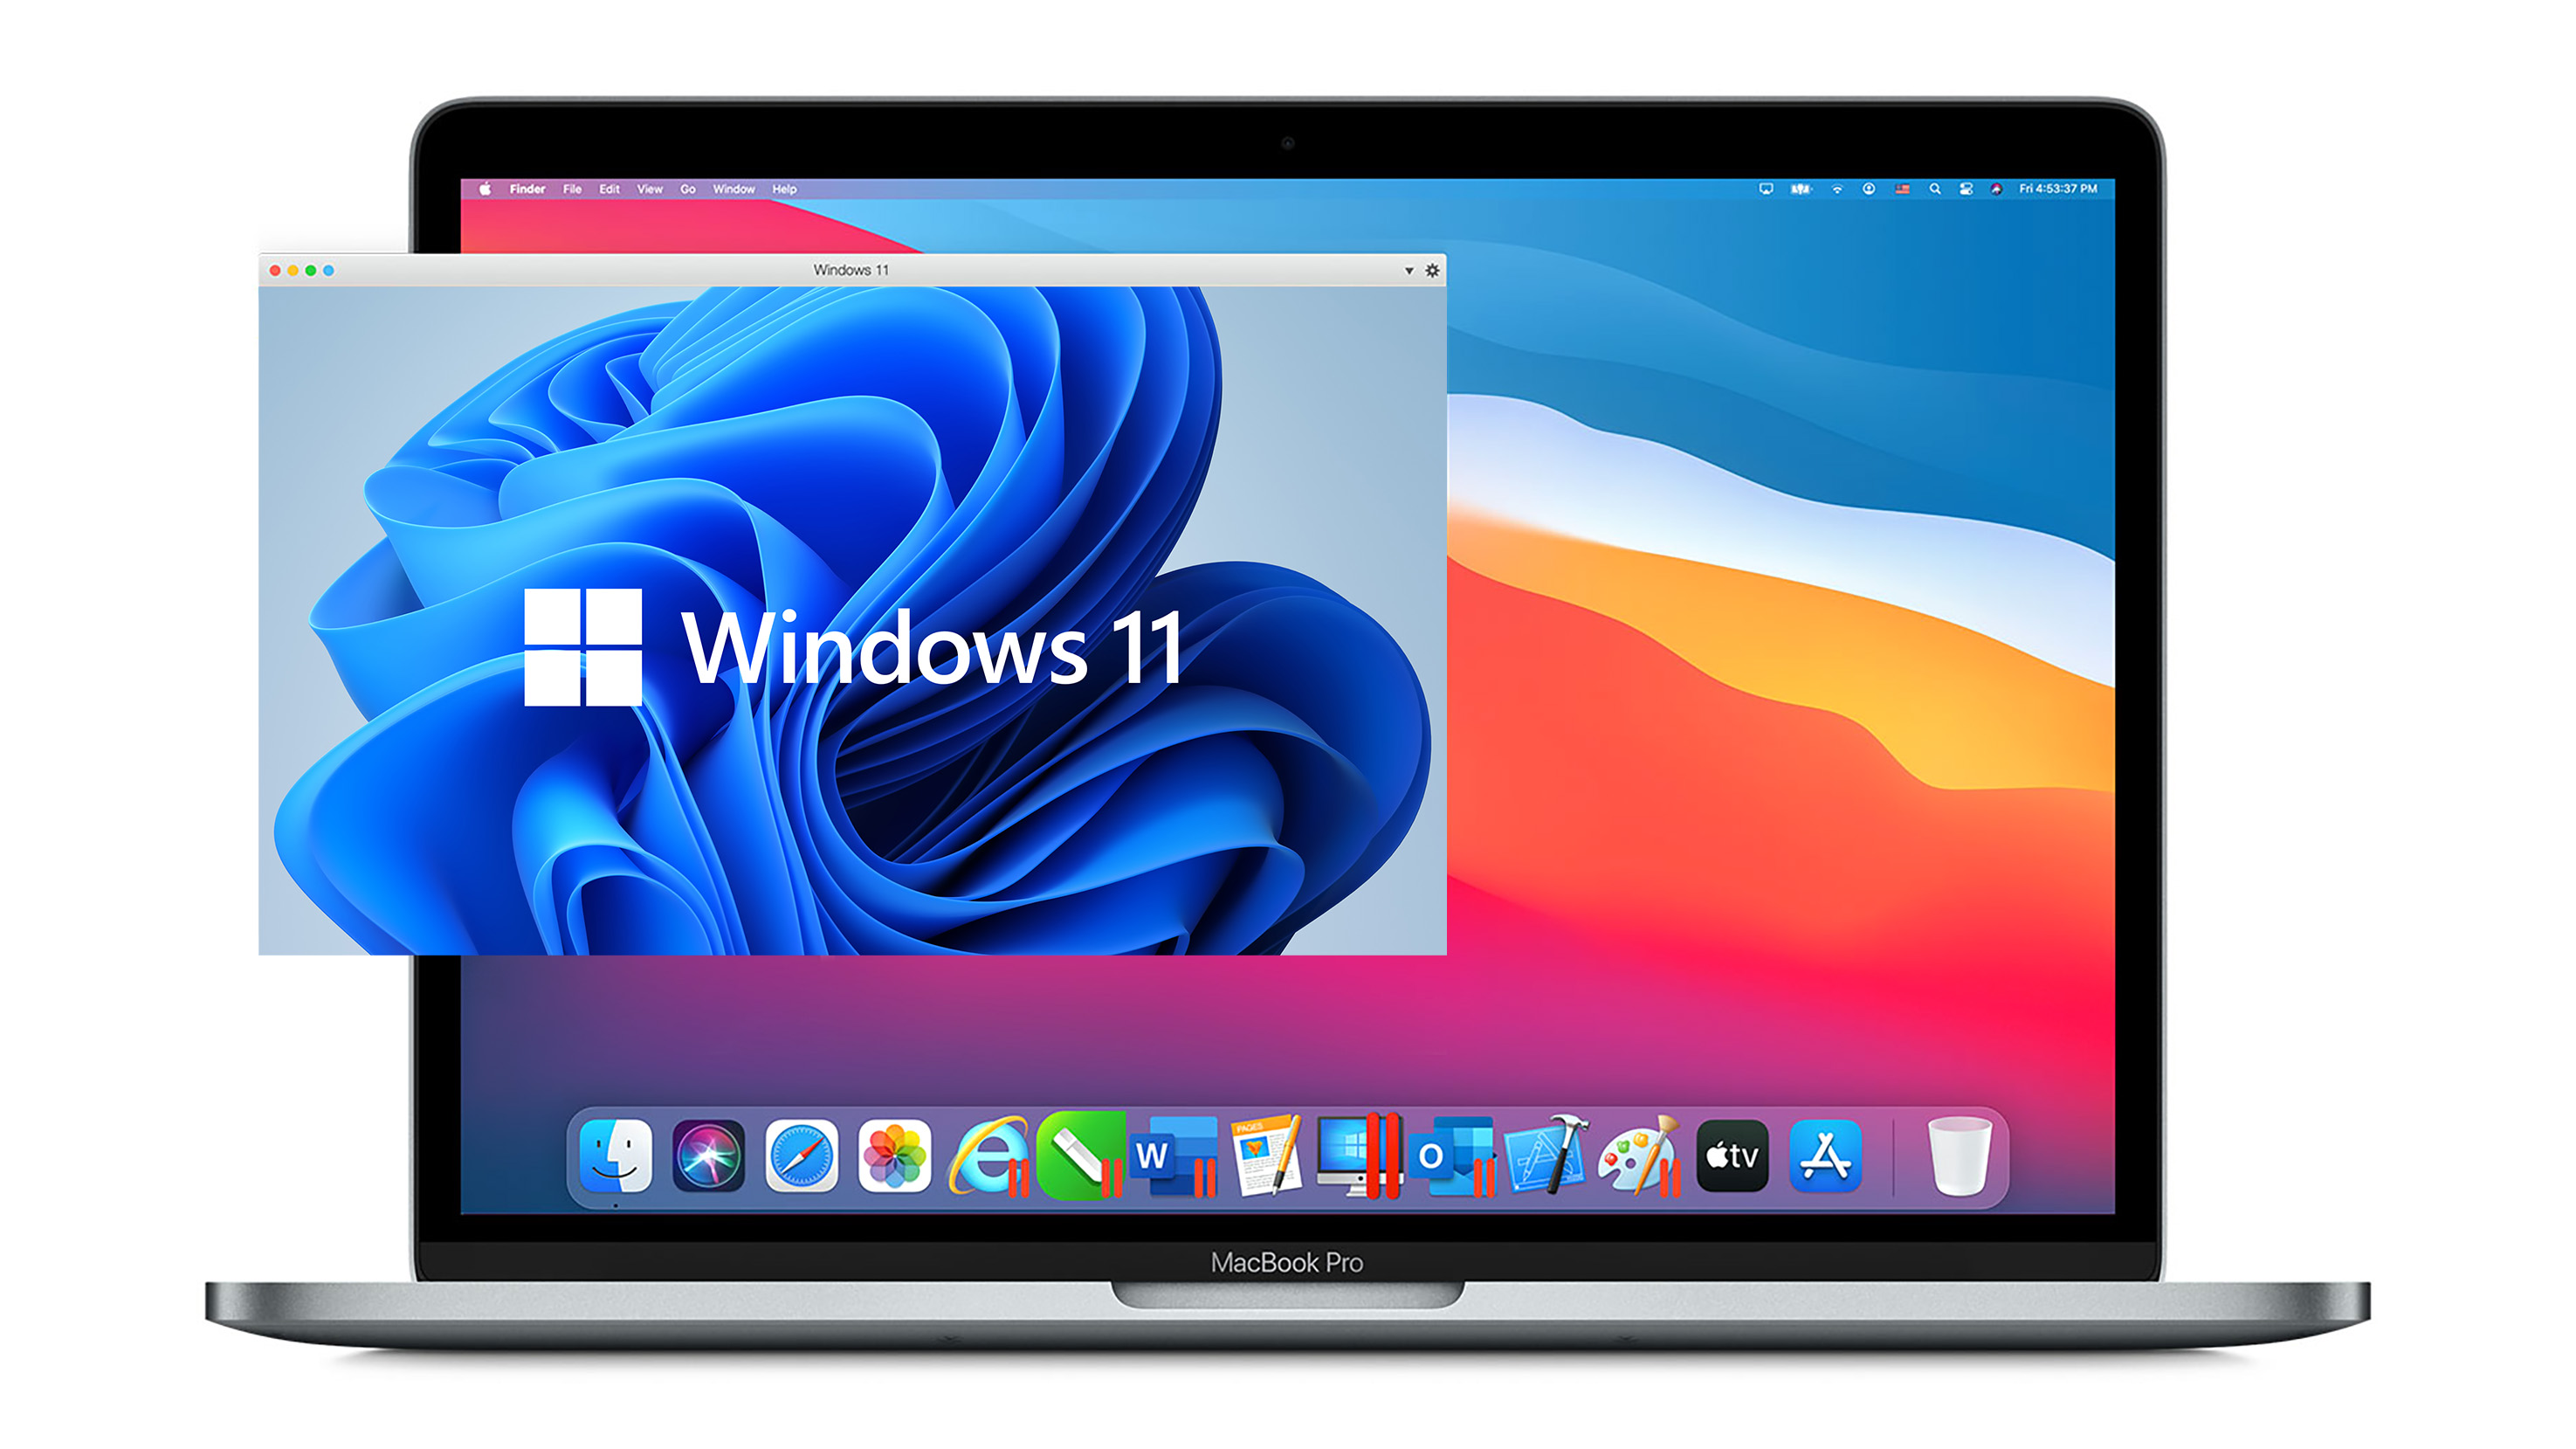 Microsoft Says ARM Windows Virtualization on Apple Silicon Macs 'Not a Supported Scenario'